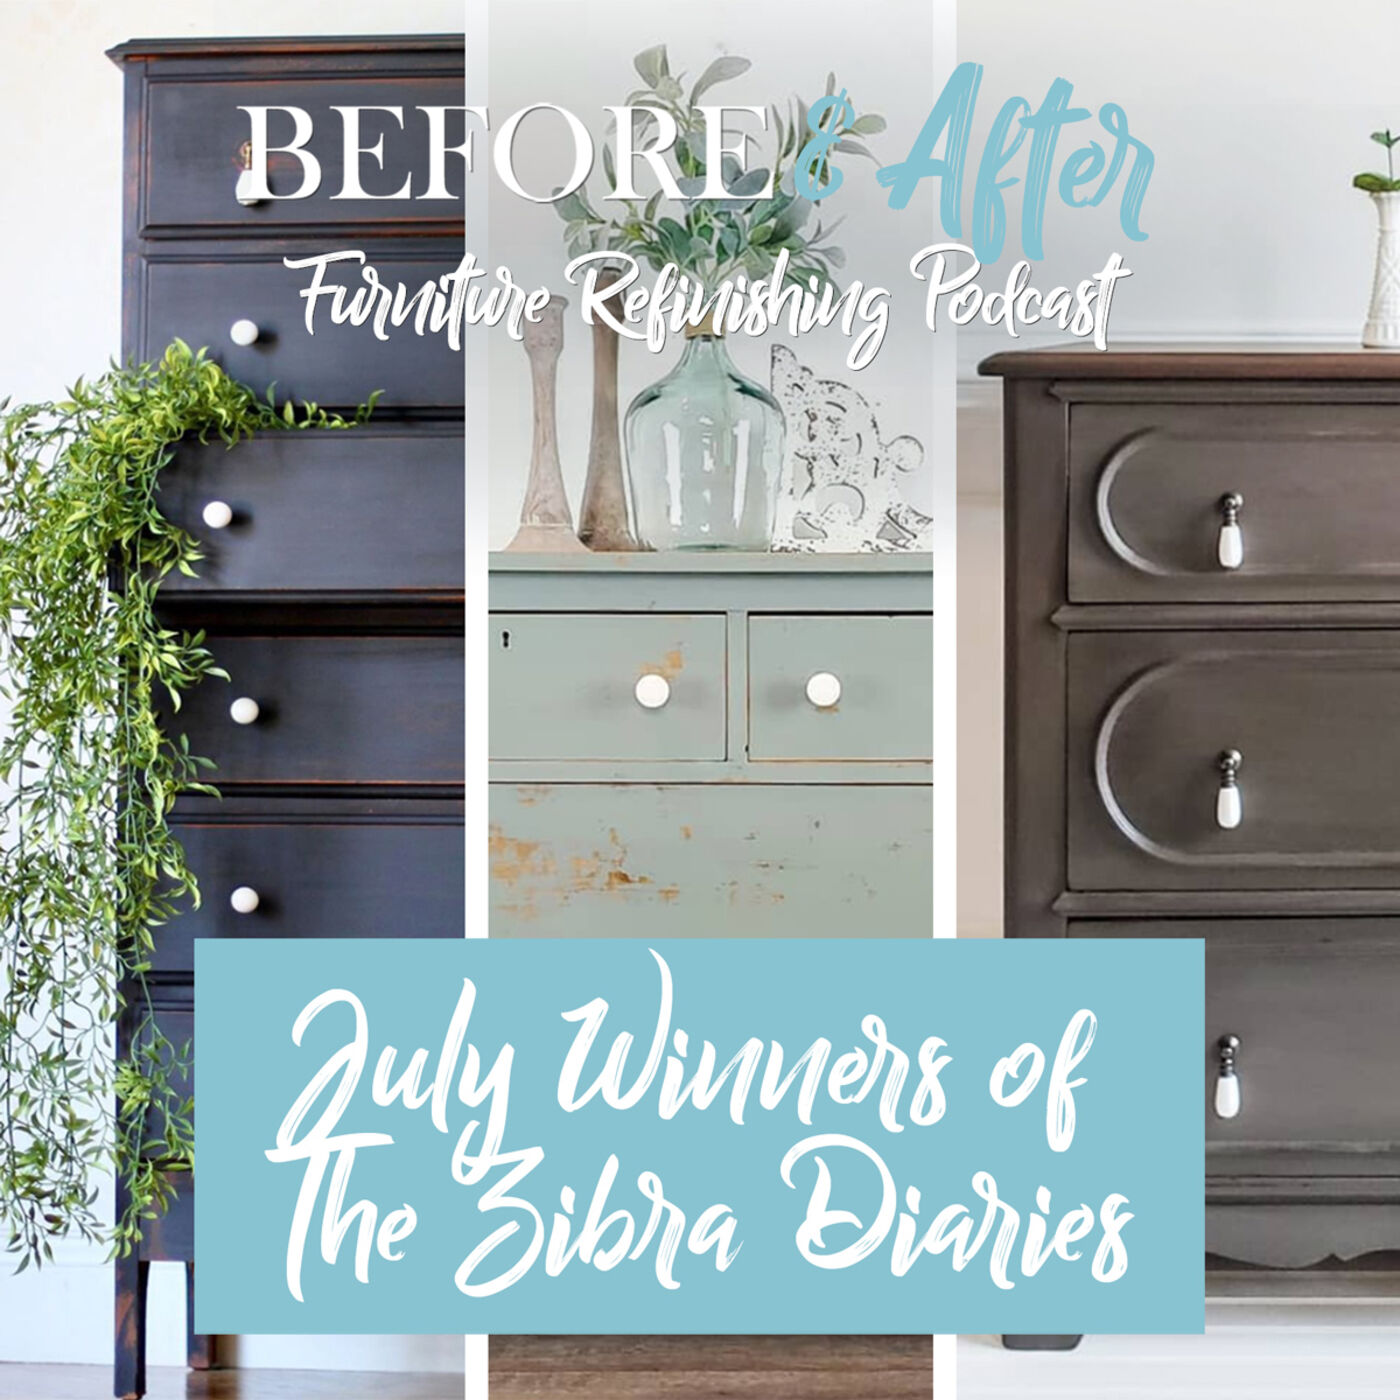 The Zibra Diaries July winners chat about their winning pieces